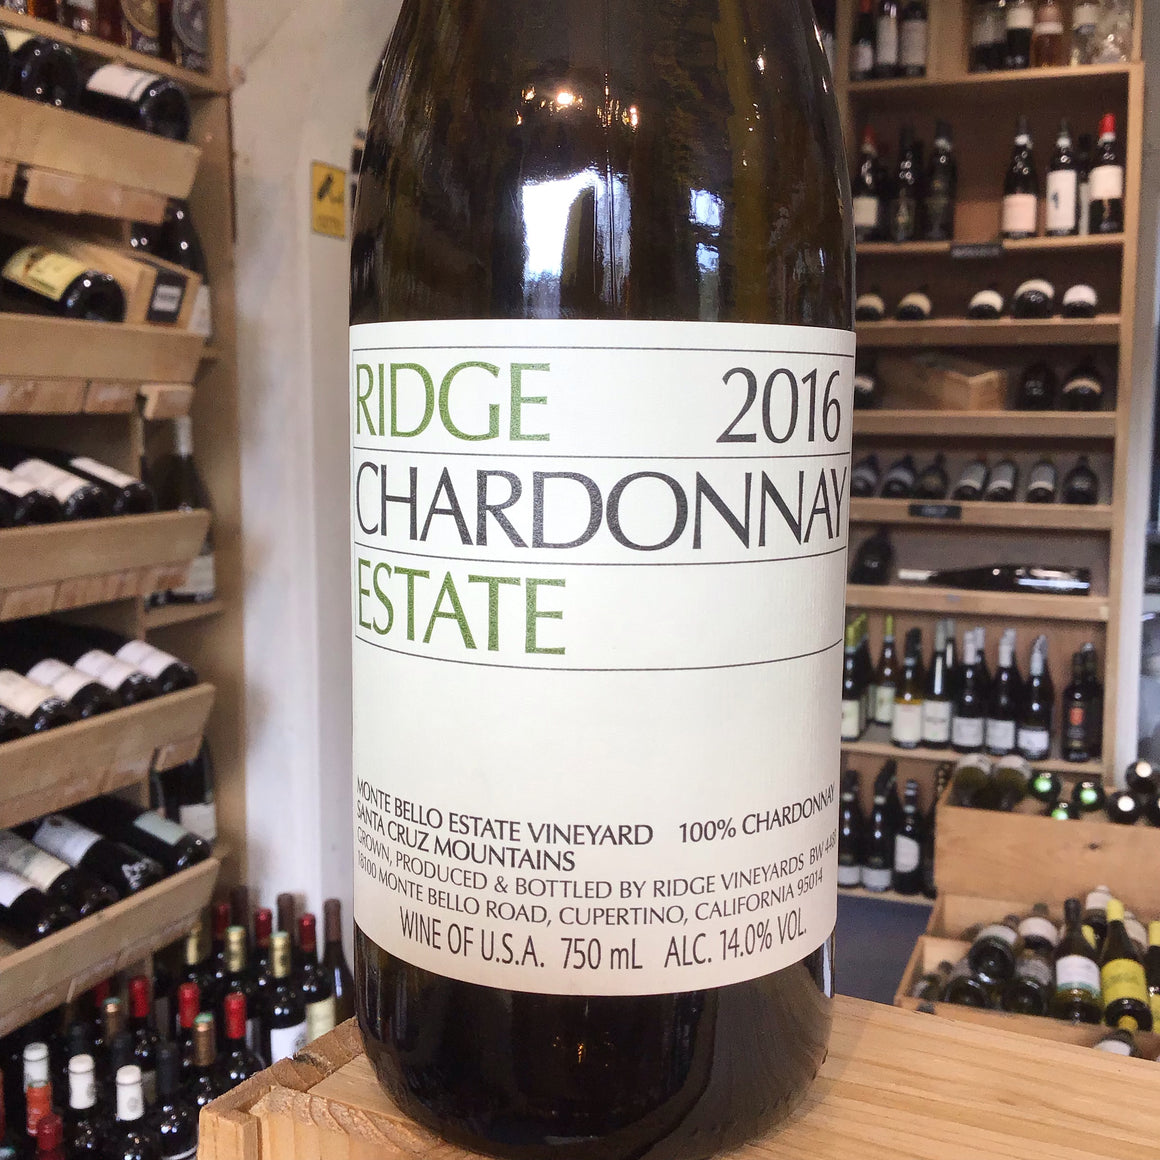 Ridge Chardonnay Estate, Santa Cruz Mountains 2016 - Butlers Wine Cellar Brighton